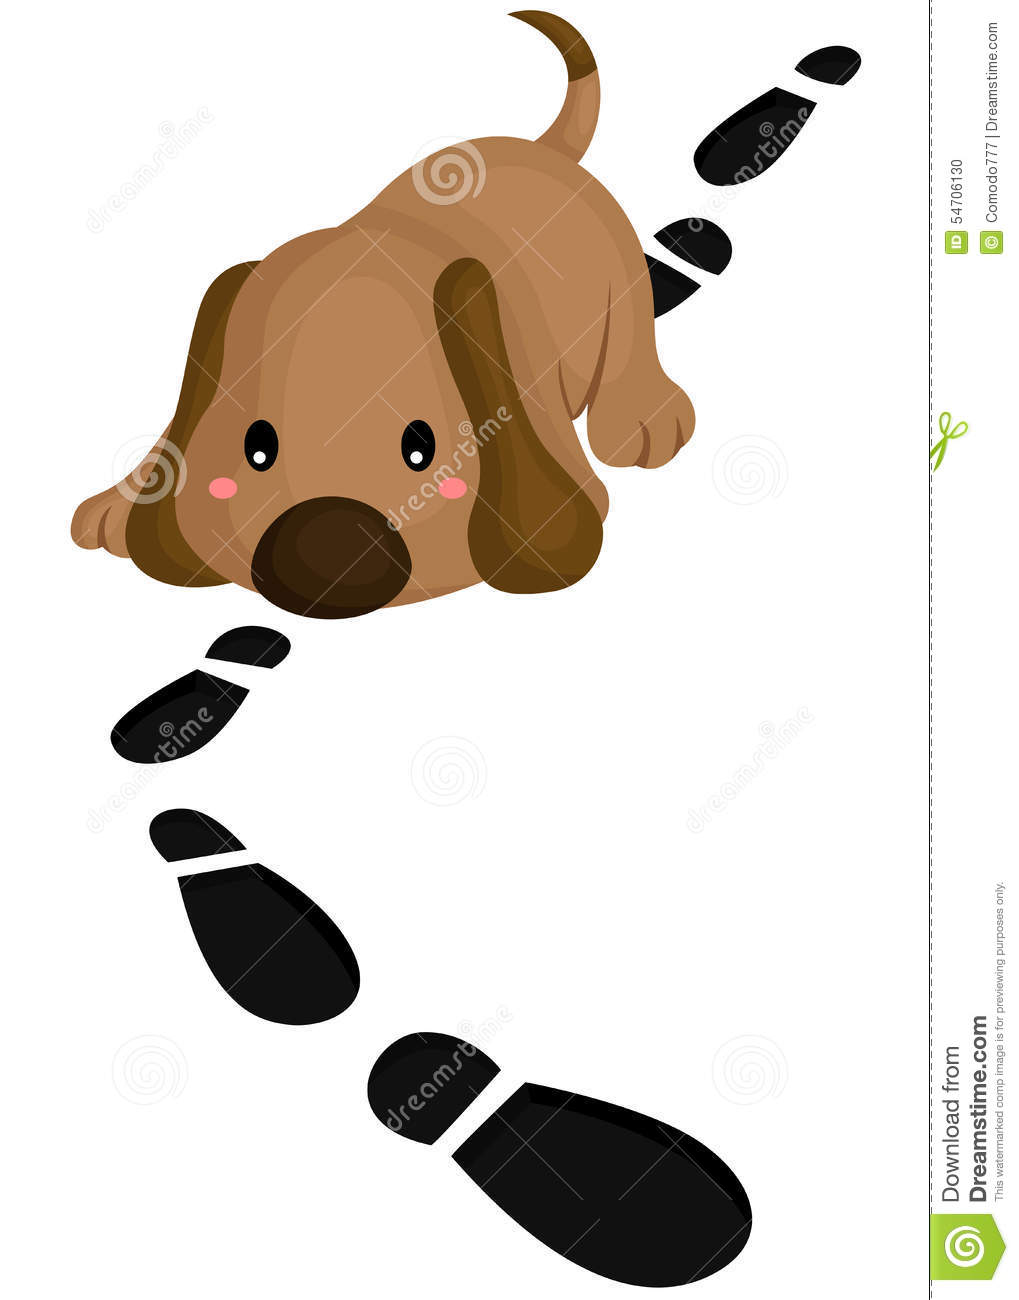 Detective Dog Stock Vector - Image: 54706130